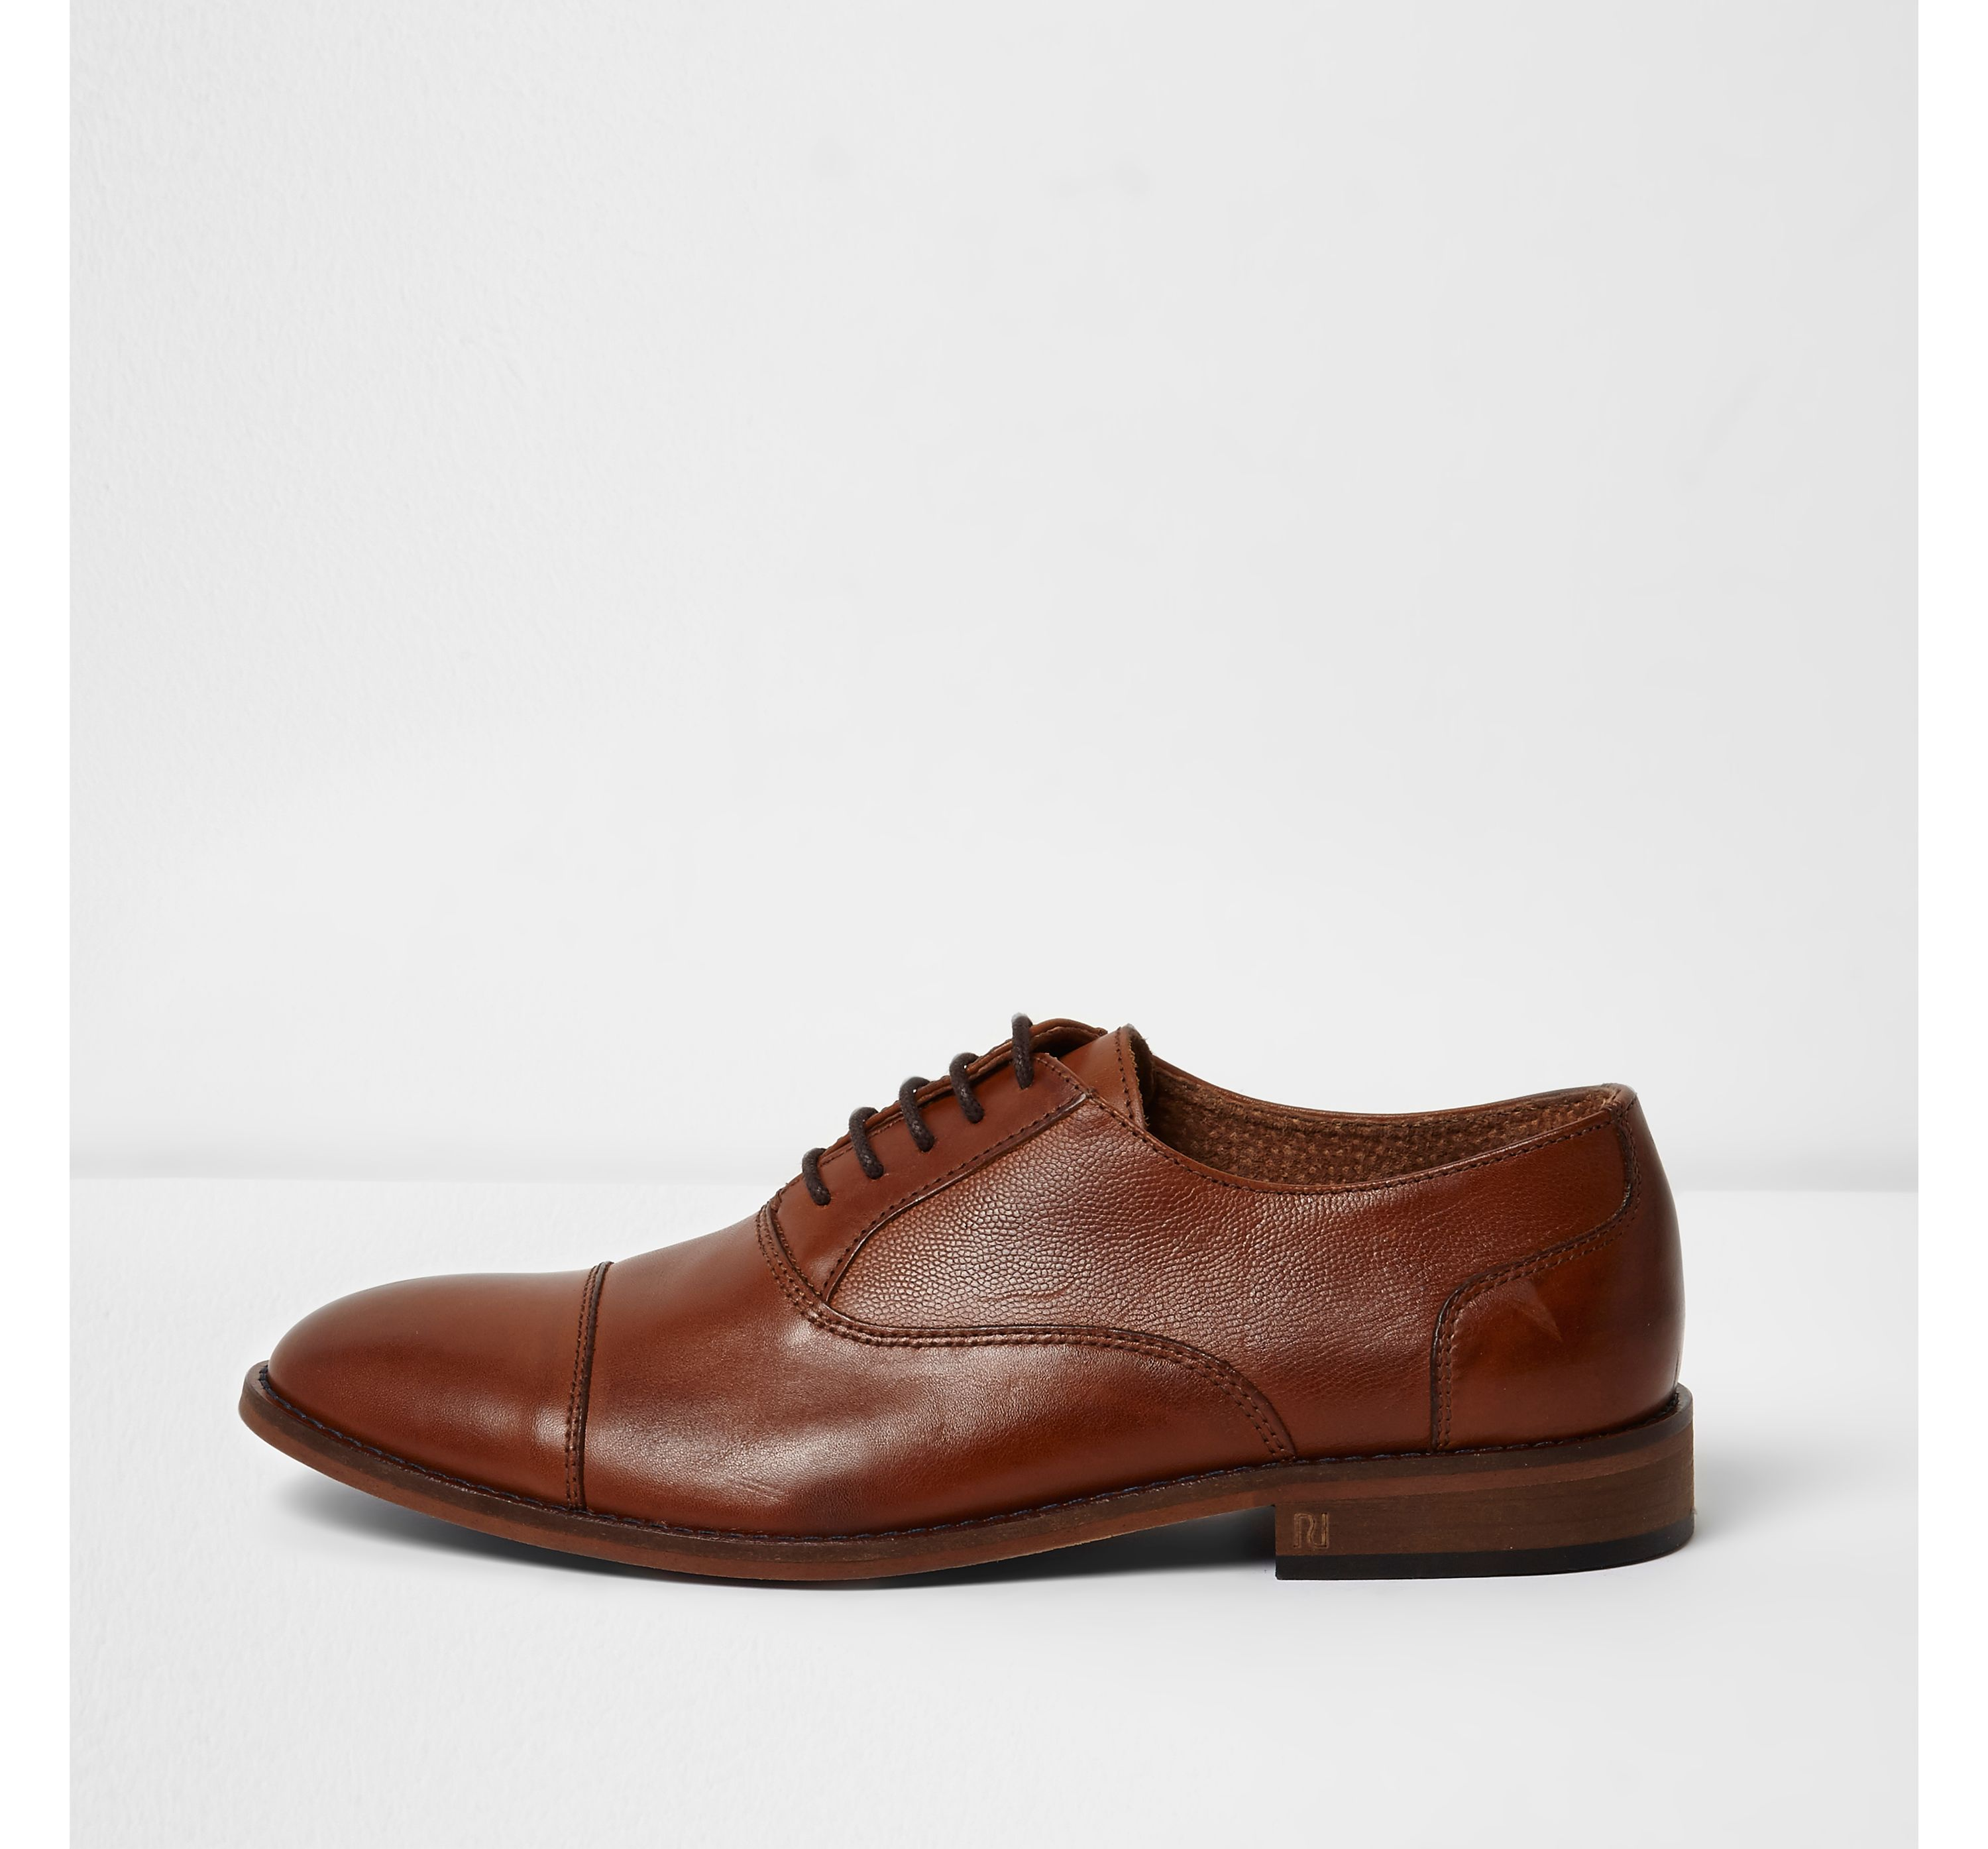 River Island Mens Tan leather toecap lace-up oxford shoes